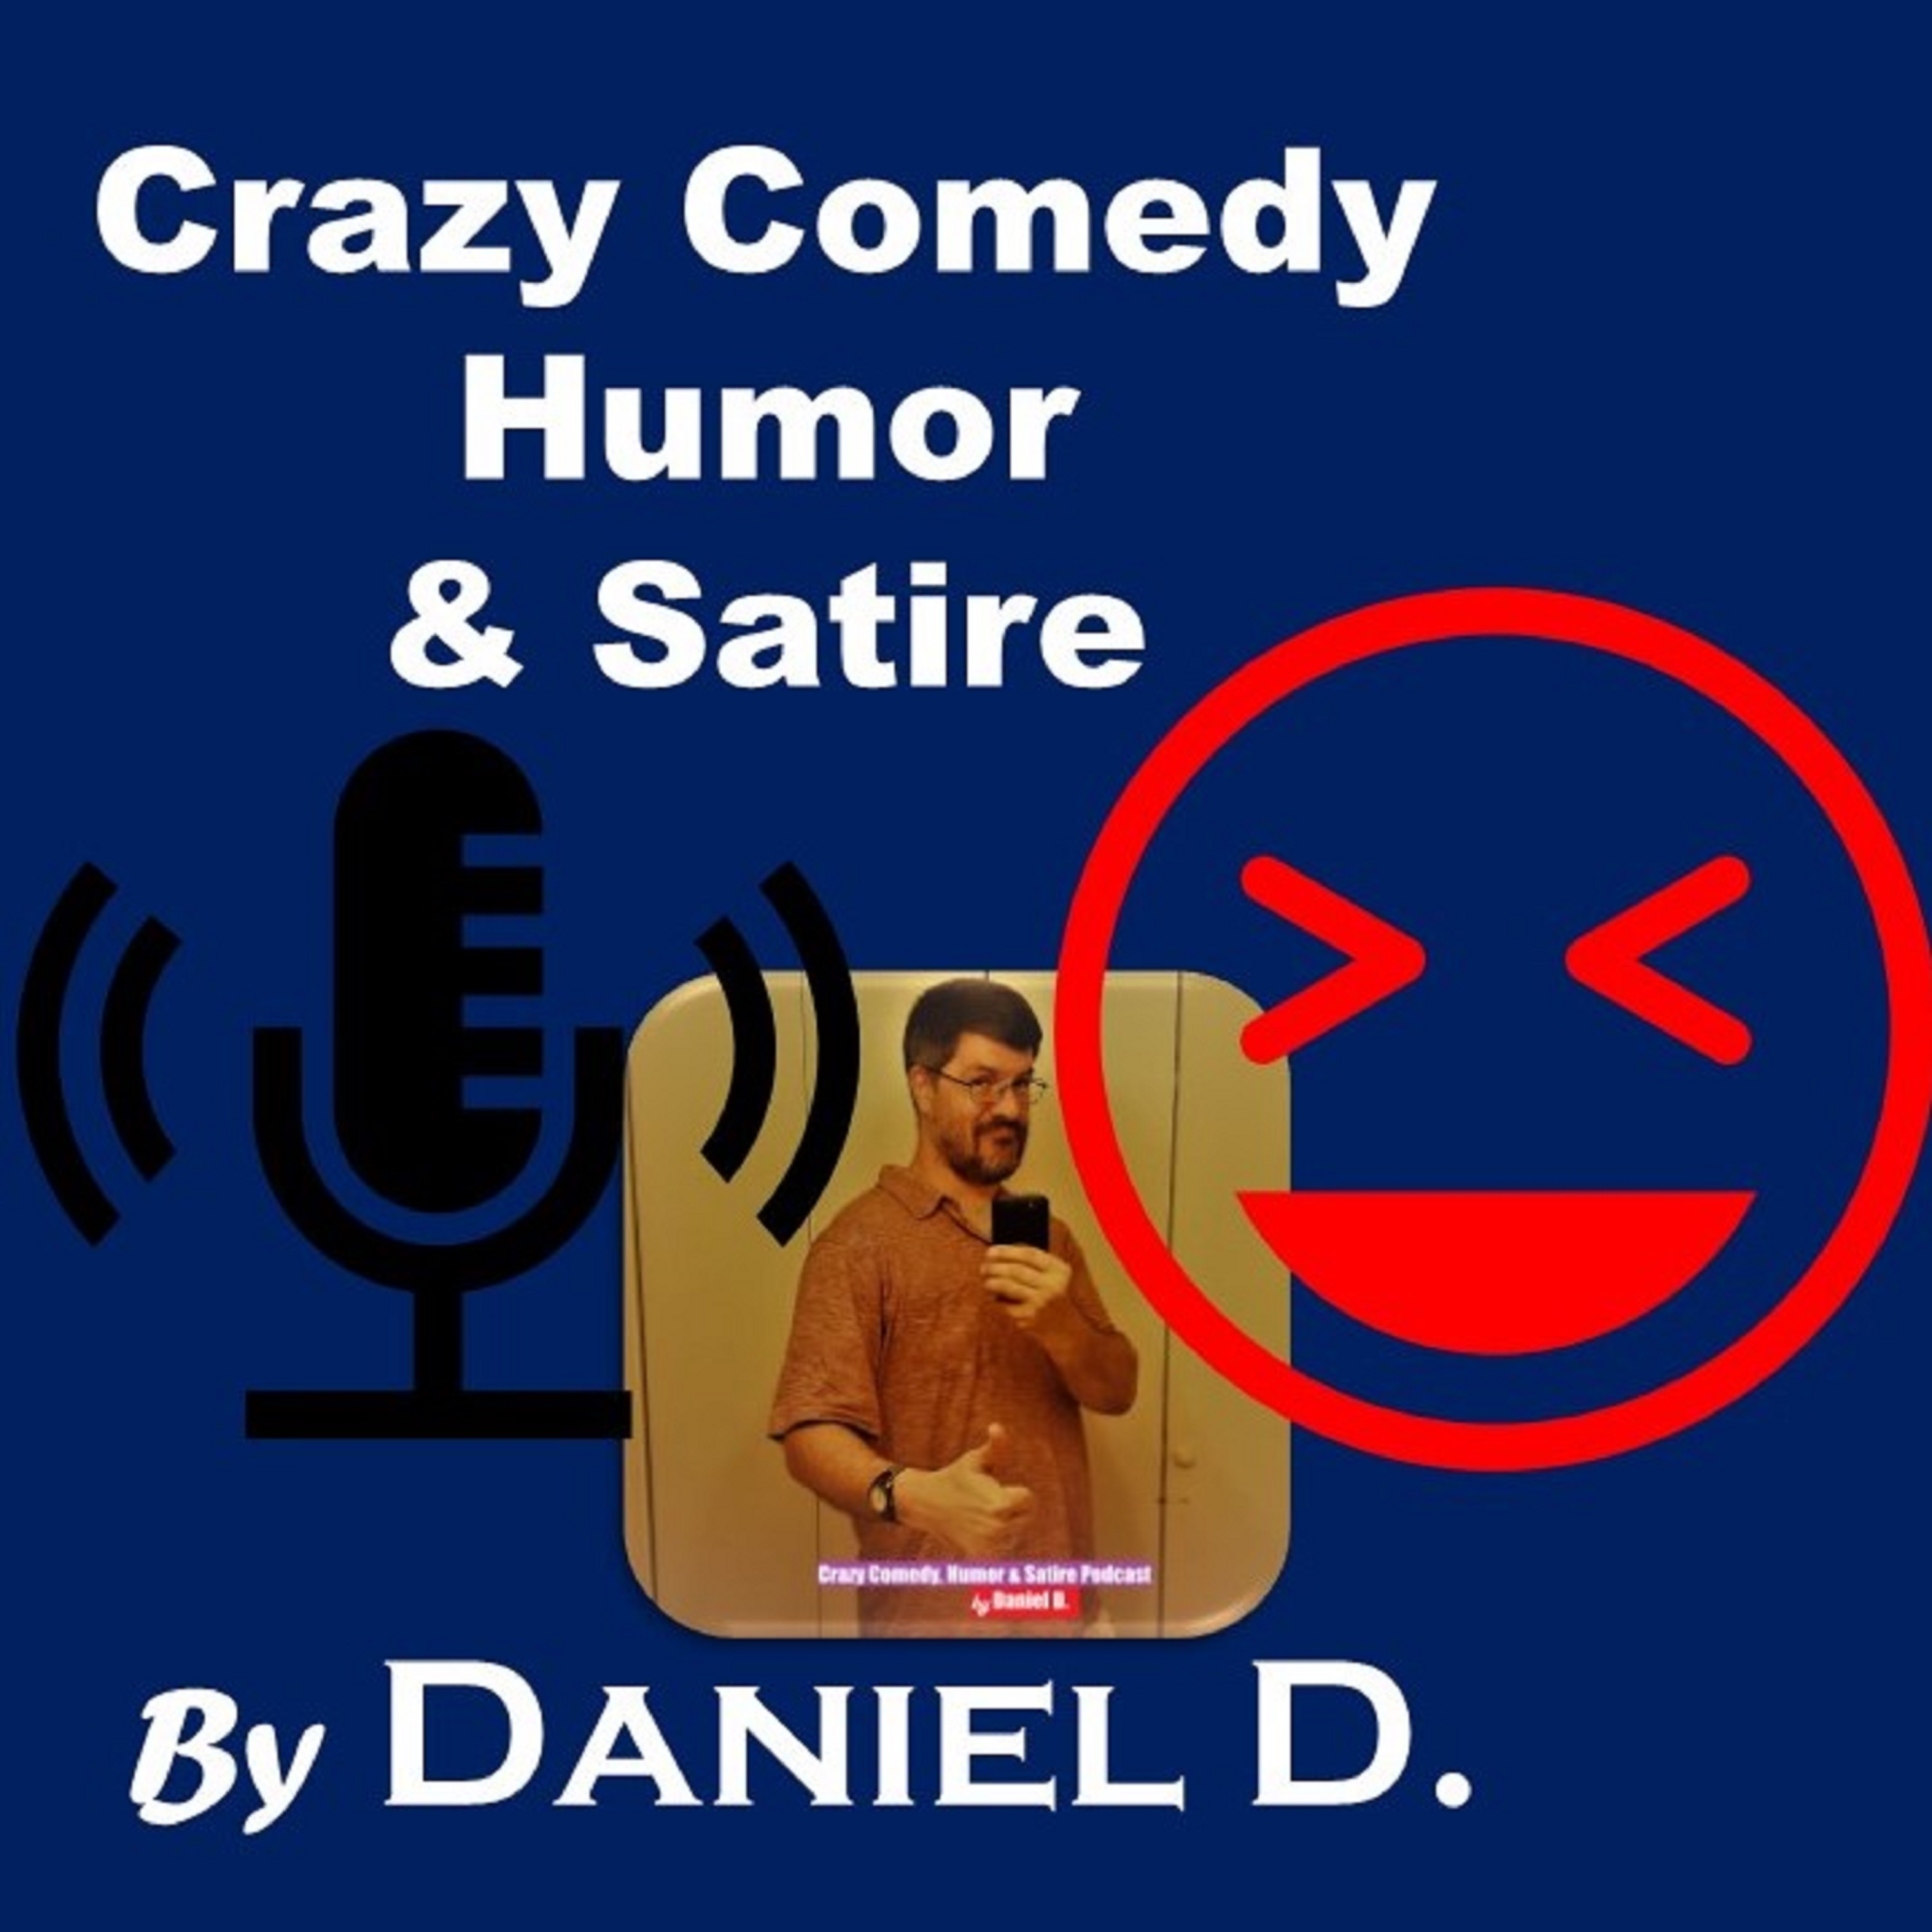 Artwork for Episode 11 of The Crazy Comedy, Humor & Satire Podcast